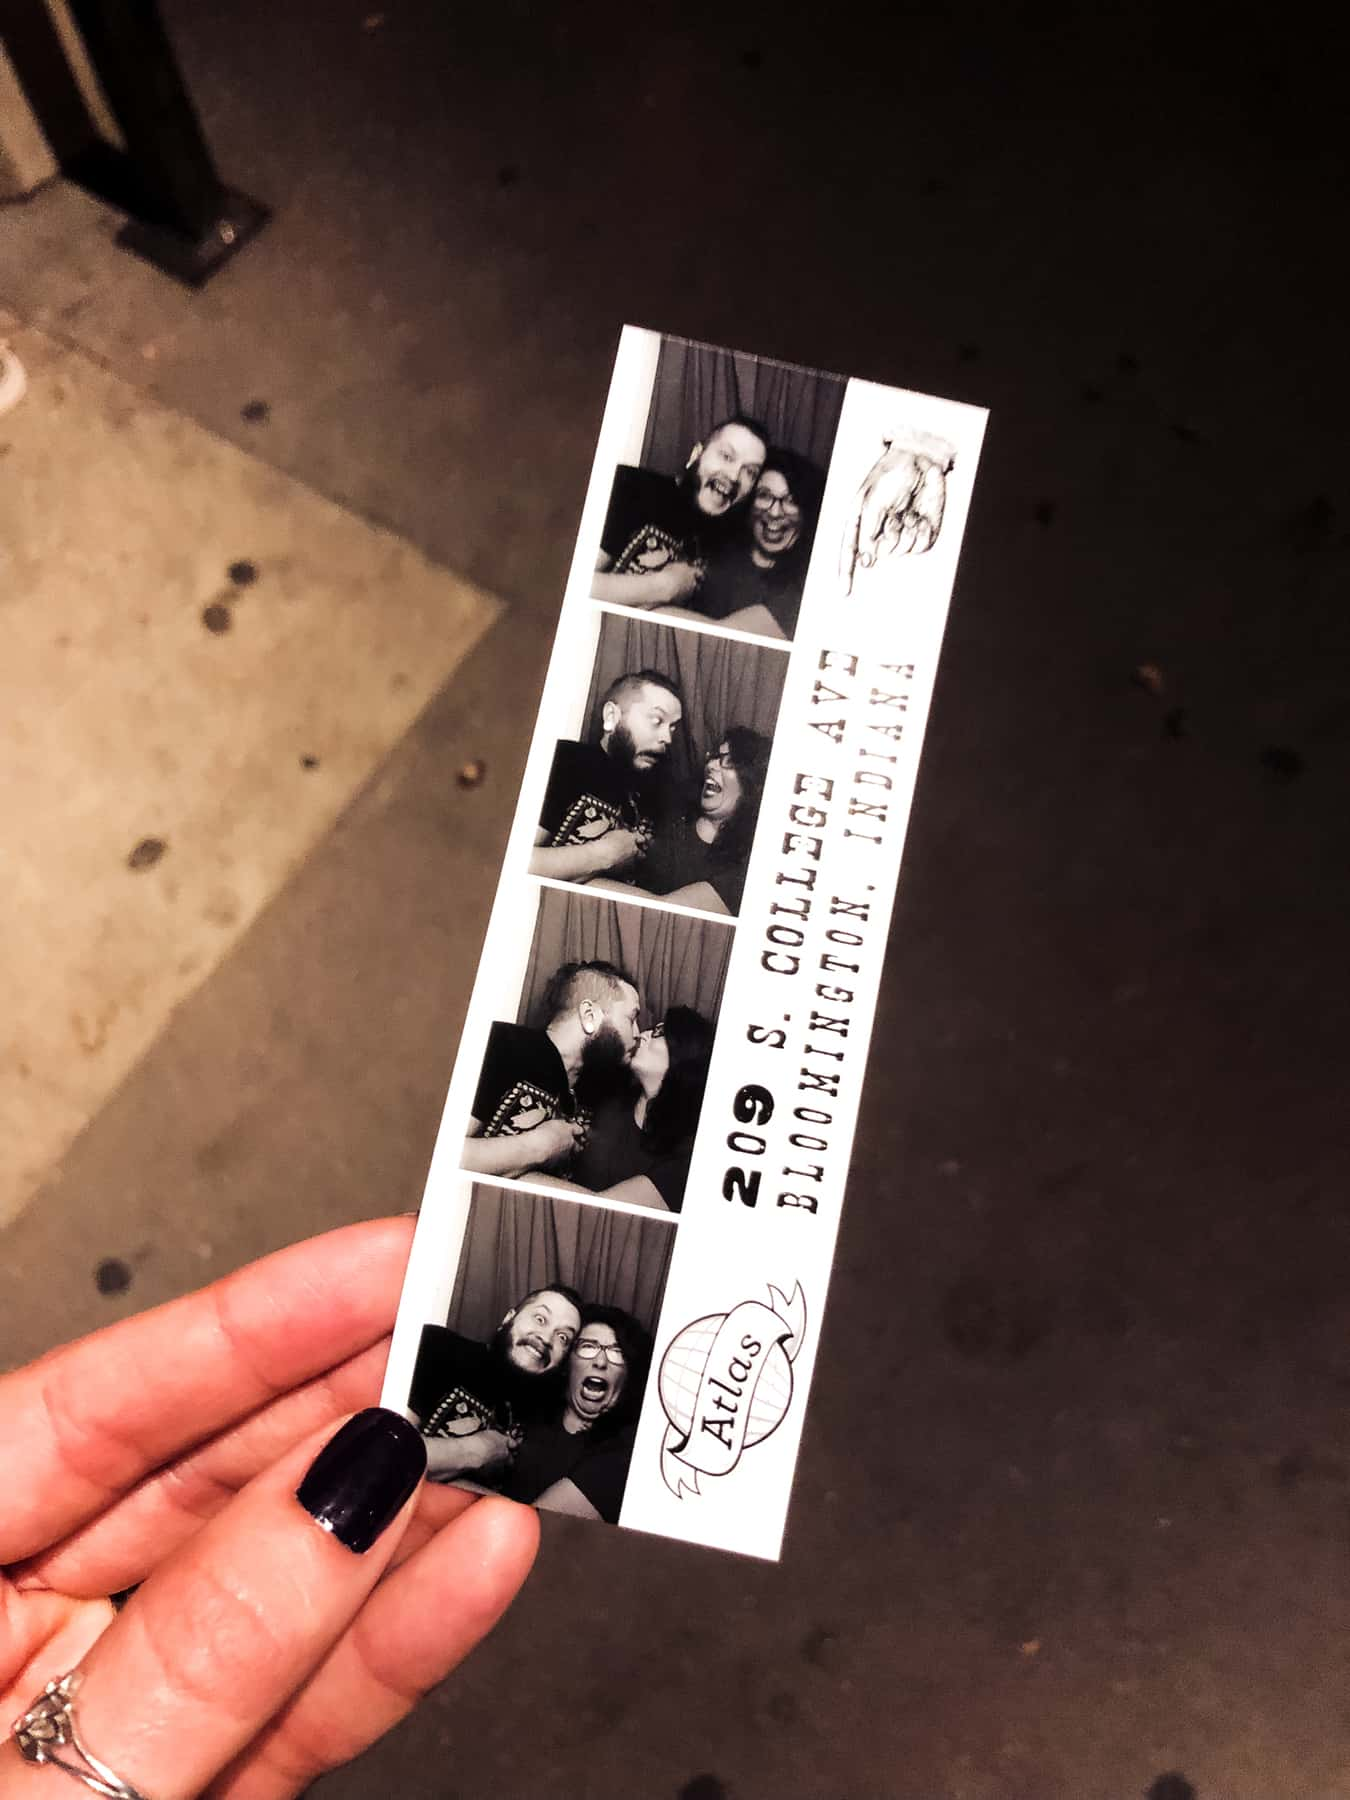 A woman's hand holds a strip of pictures from a photo booth.